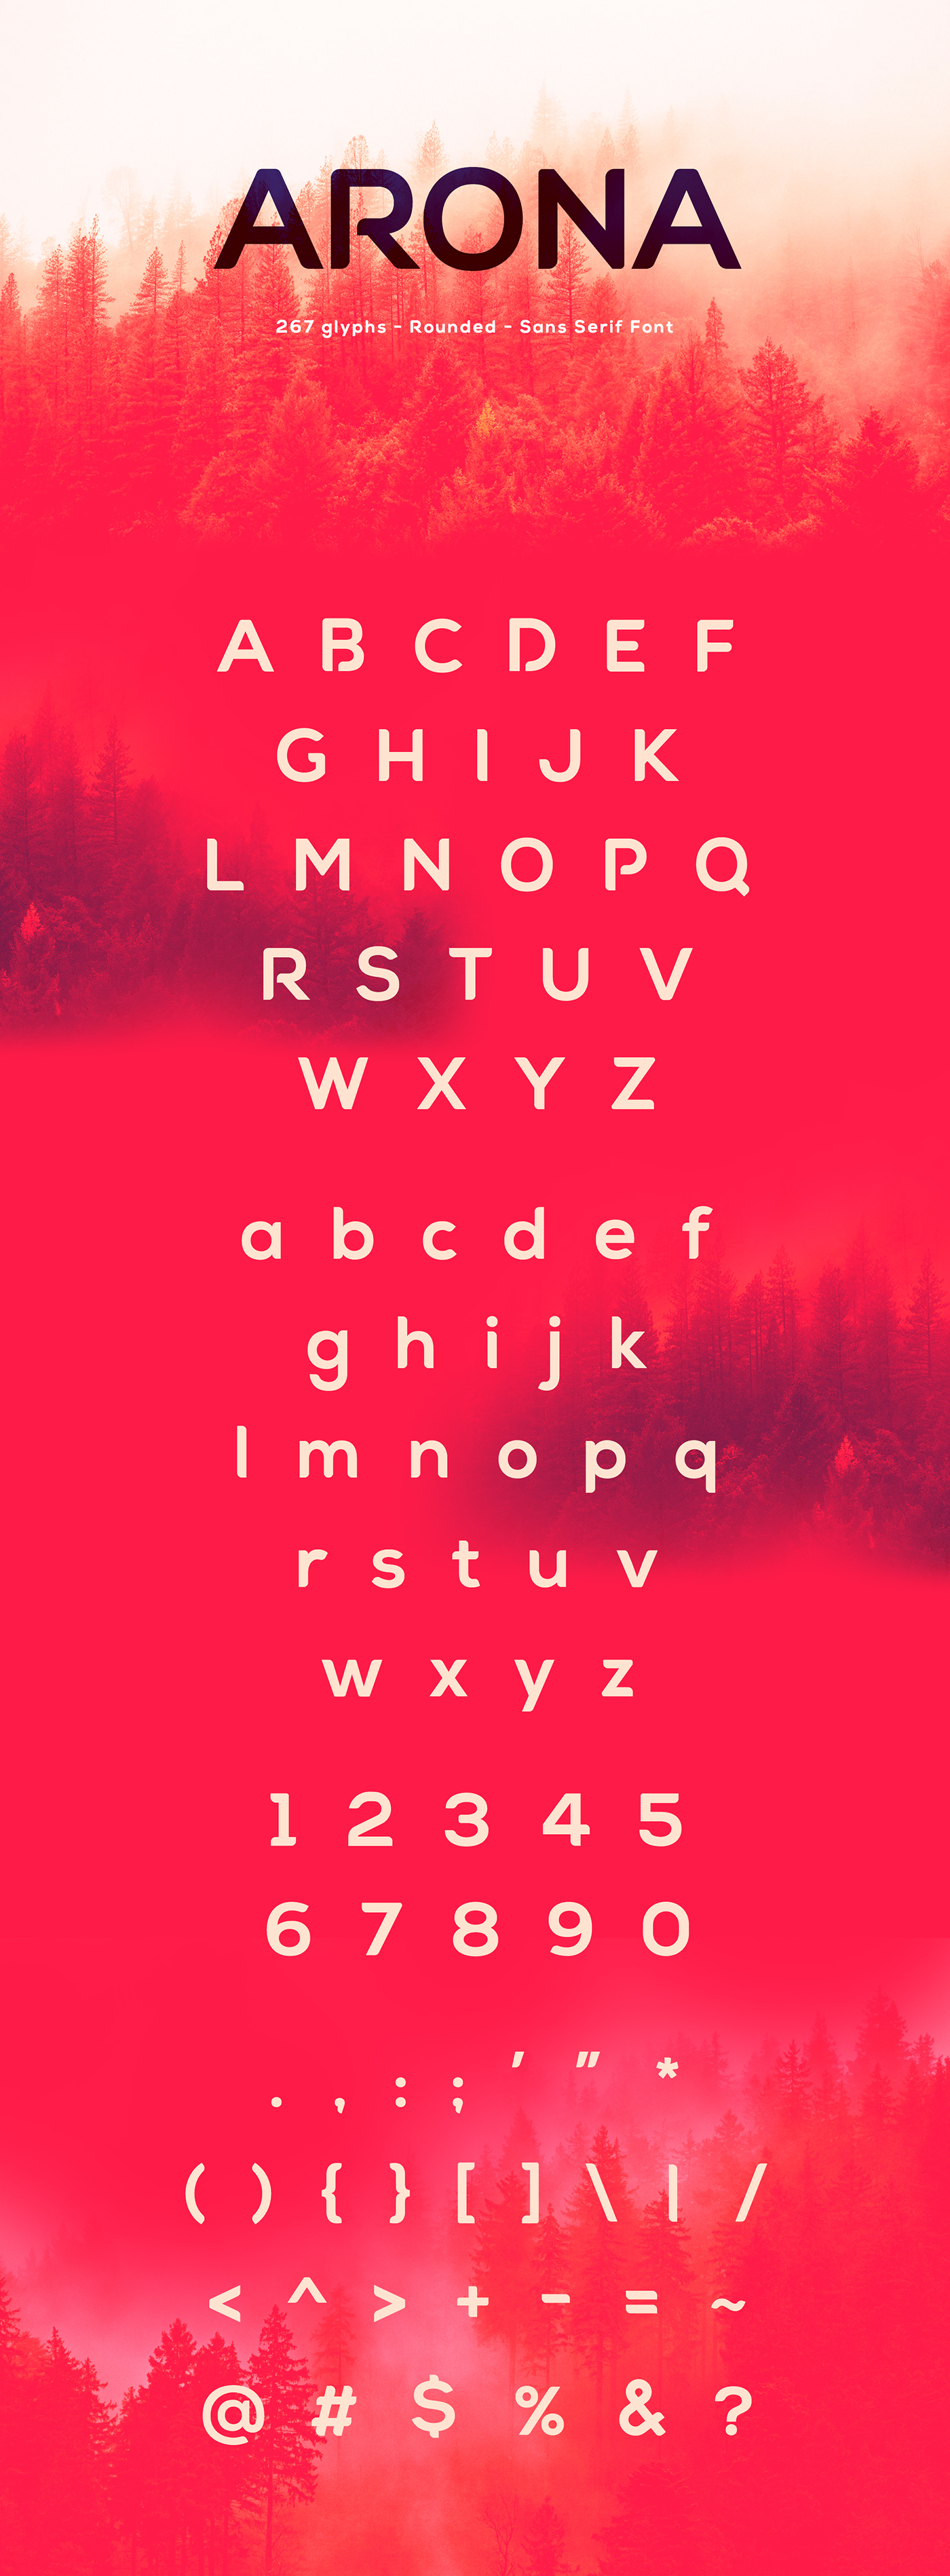 Typeface typo typography   free font sans serif serif bold rounded lettering